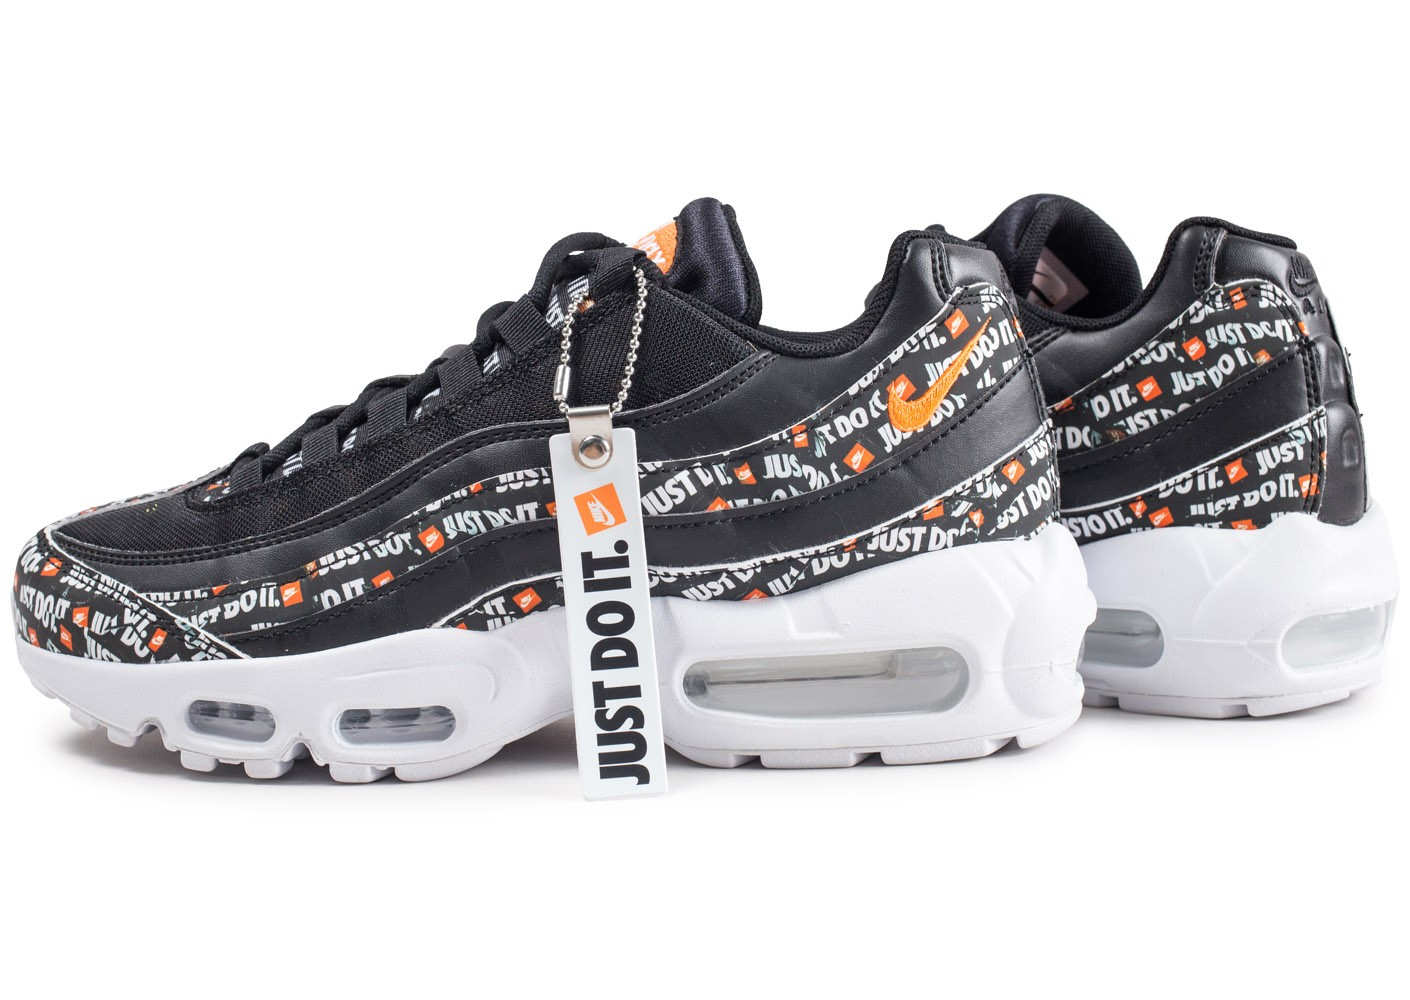 best price ever popular popular stores Nike Air Max 95 Just Do It noire - Chaussures Baskets homme ...